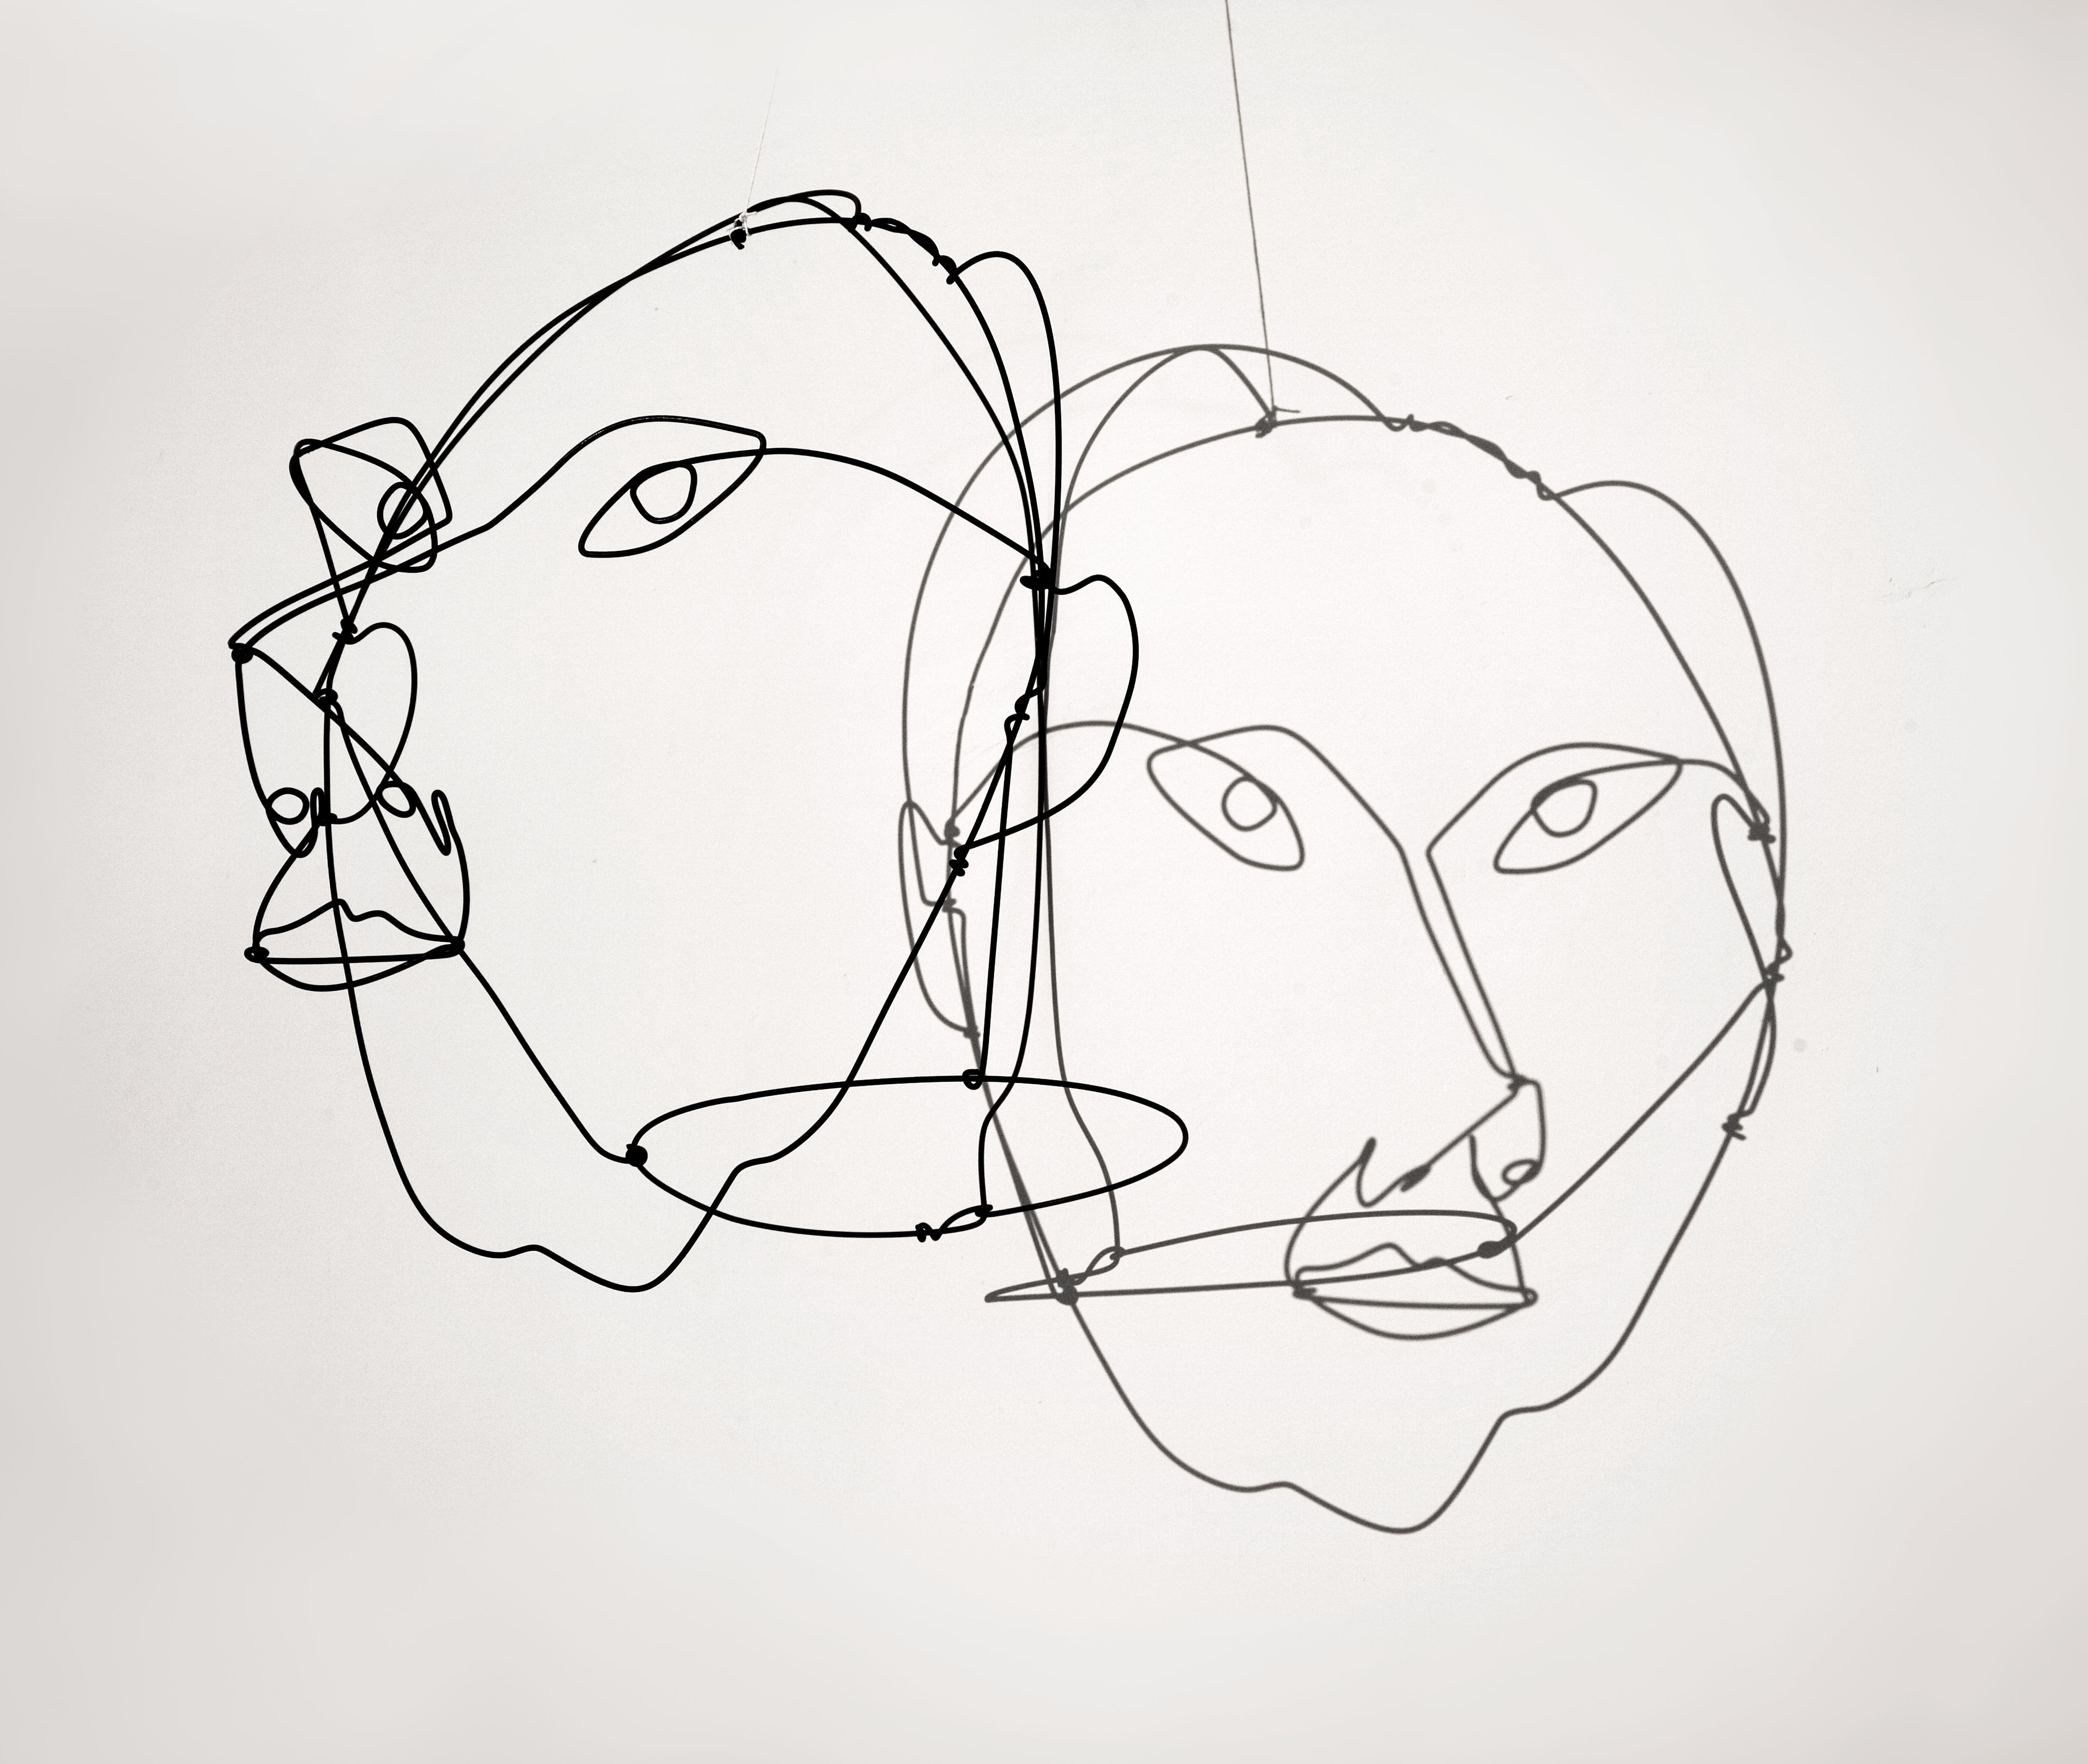 Contour Line Drawing With Wire : Calder wire portraits mr yo